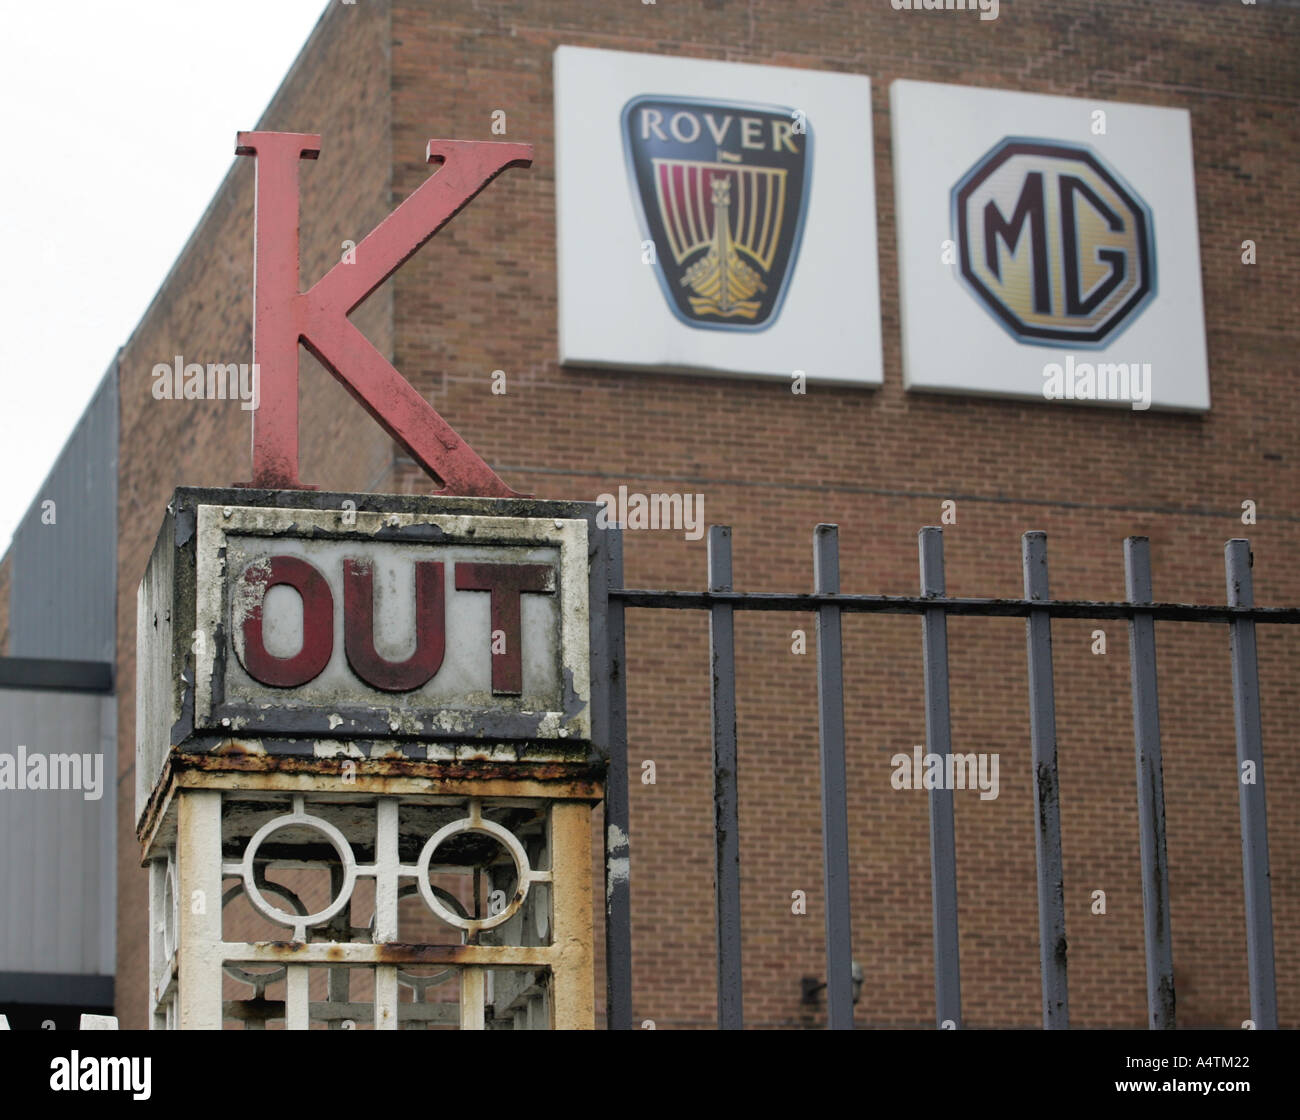 rover-longbridge-gate-k-out-at-the-rover